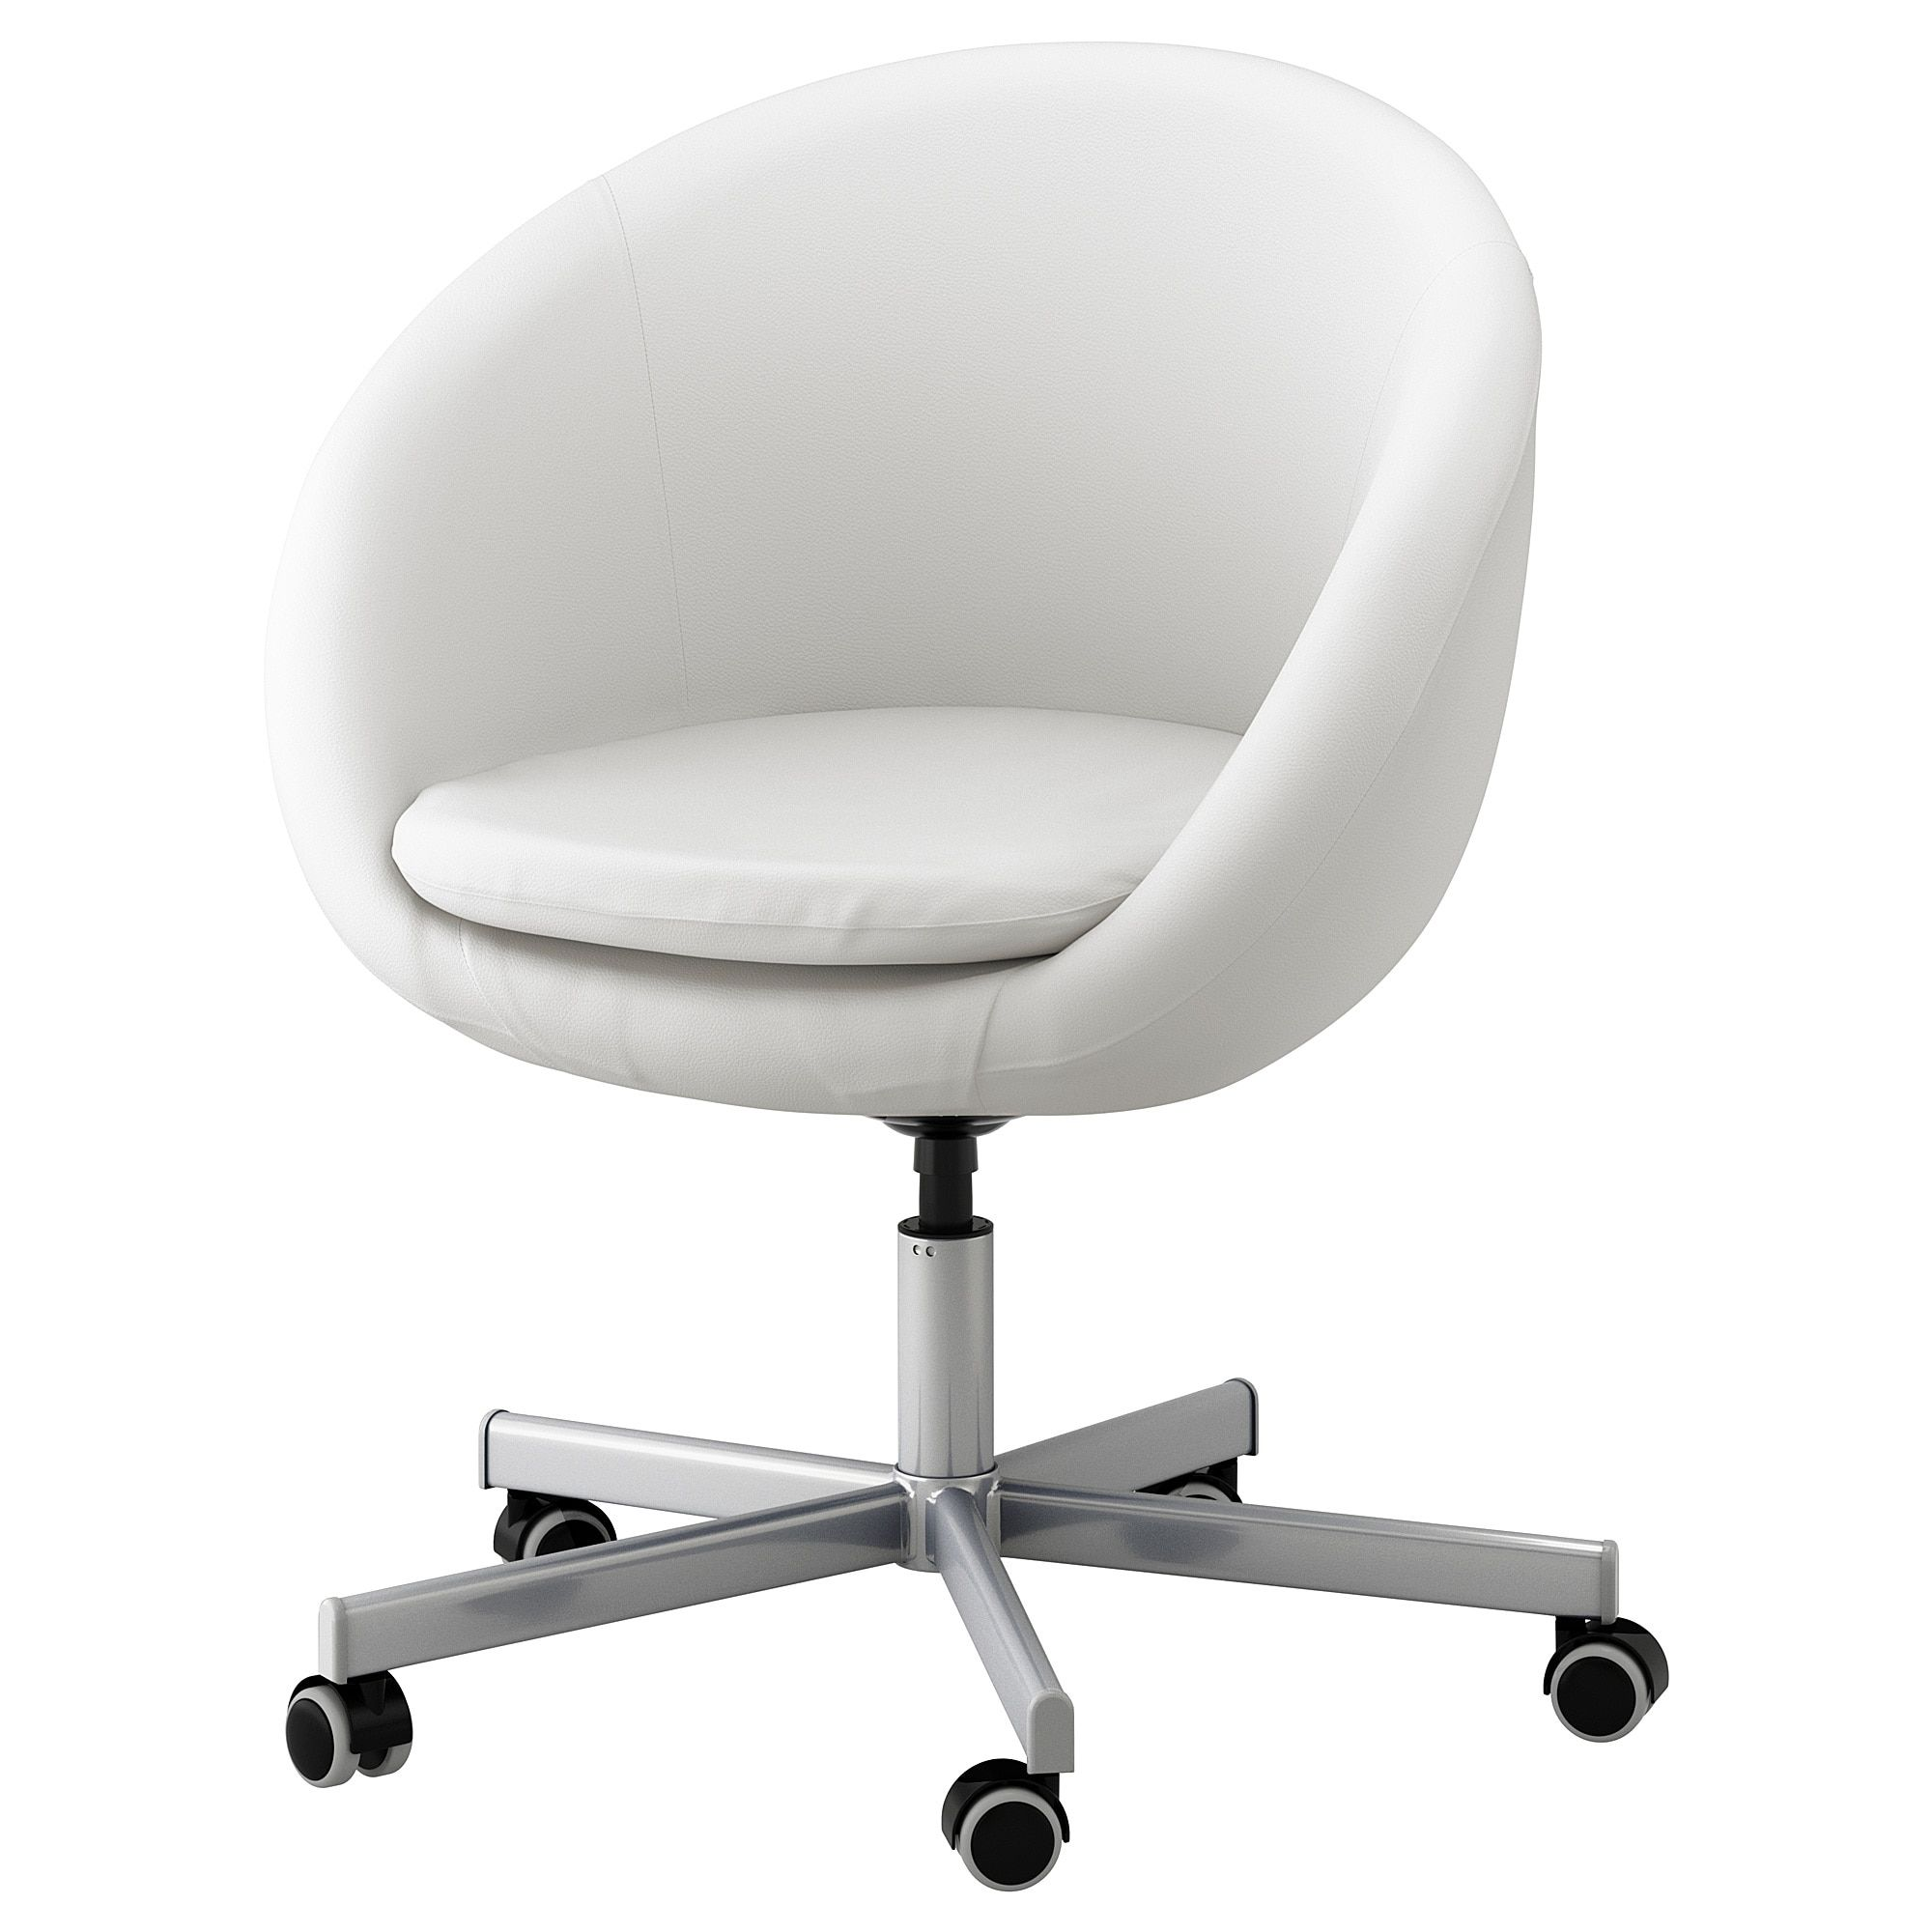 Ikea Us Furniture And Home Furnishings Desk Chair Comfy Office Chair Design Ikea Desk Chair